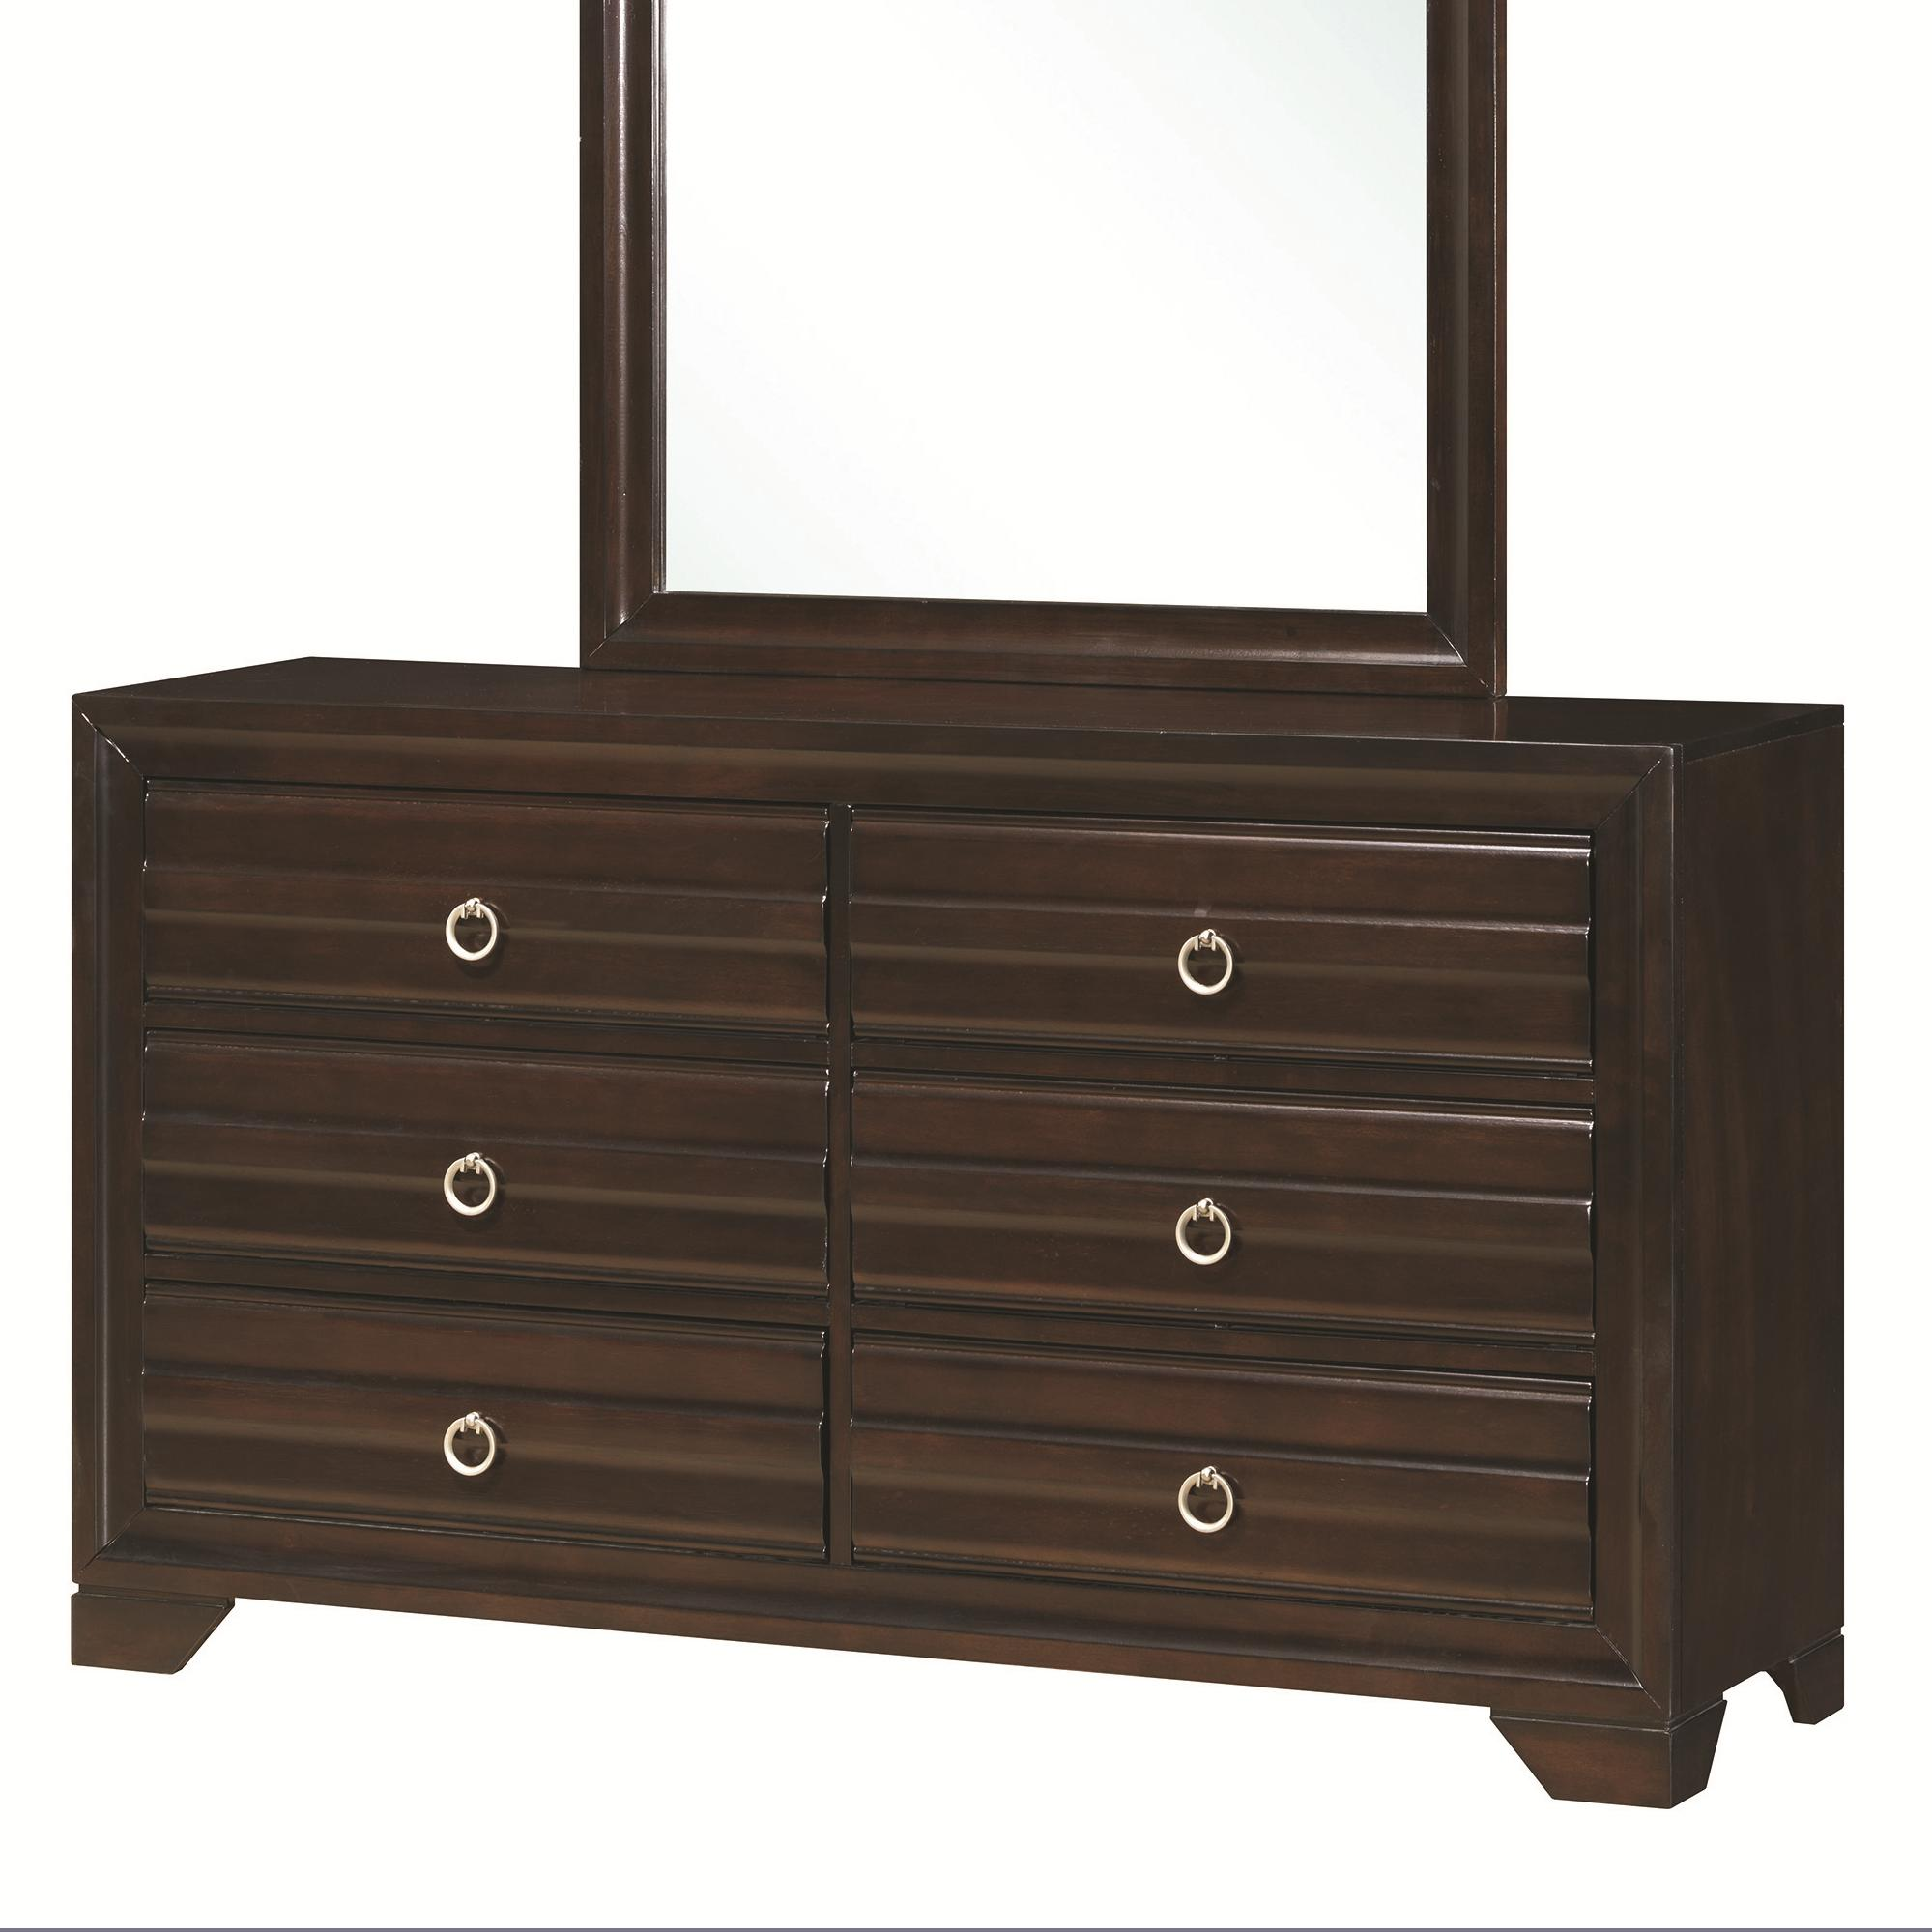 Coaster Bryce 20347 Dresser - Item Number: 203473